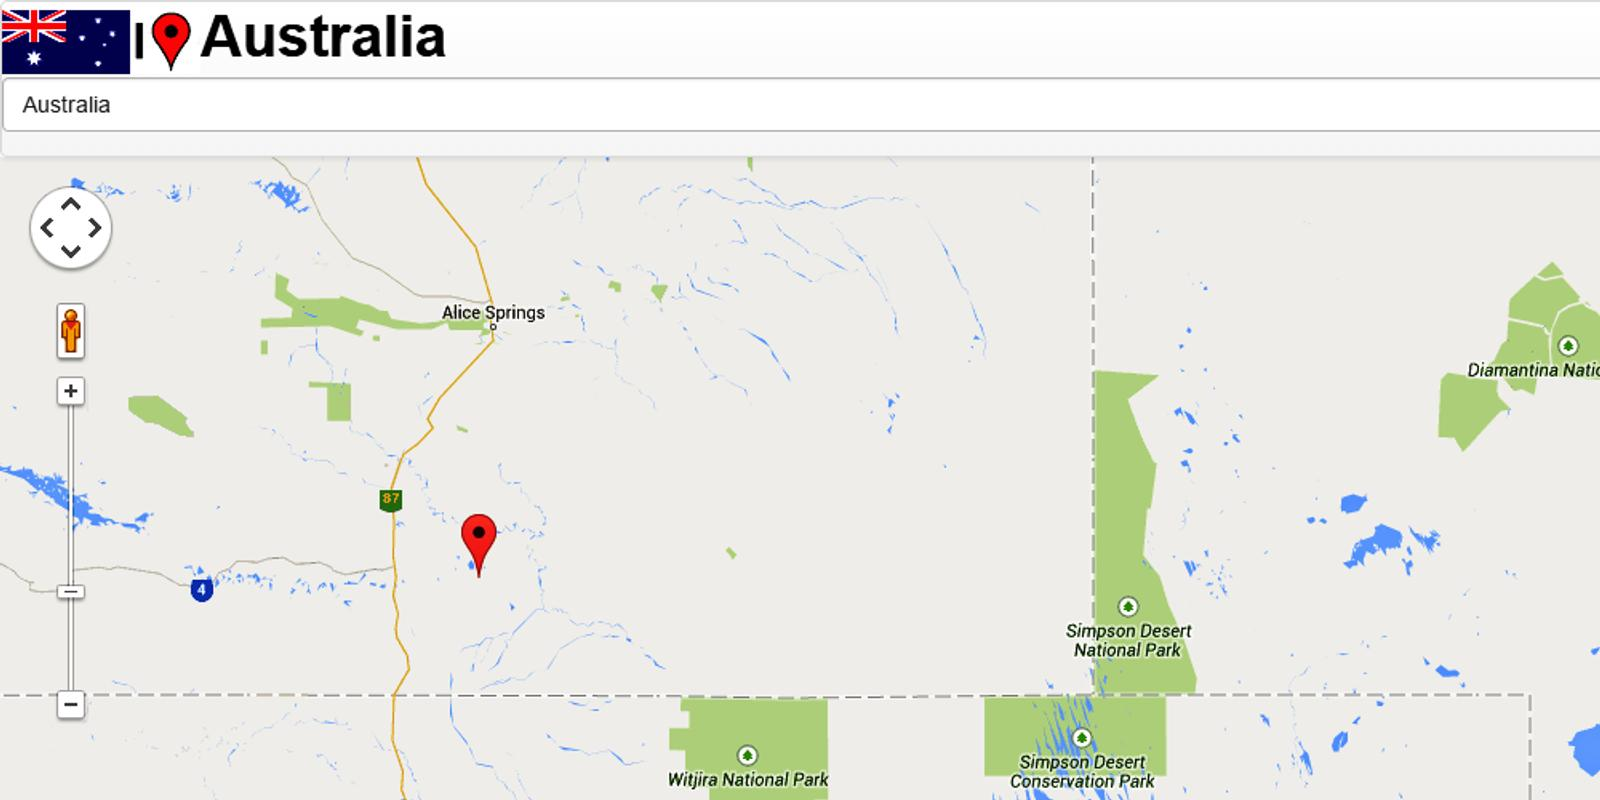 Australia Canberra Map.Australia Canberra Map For Android Apk Download